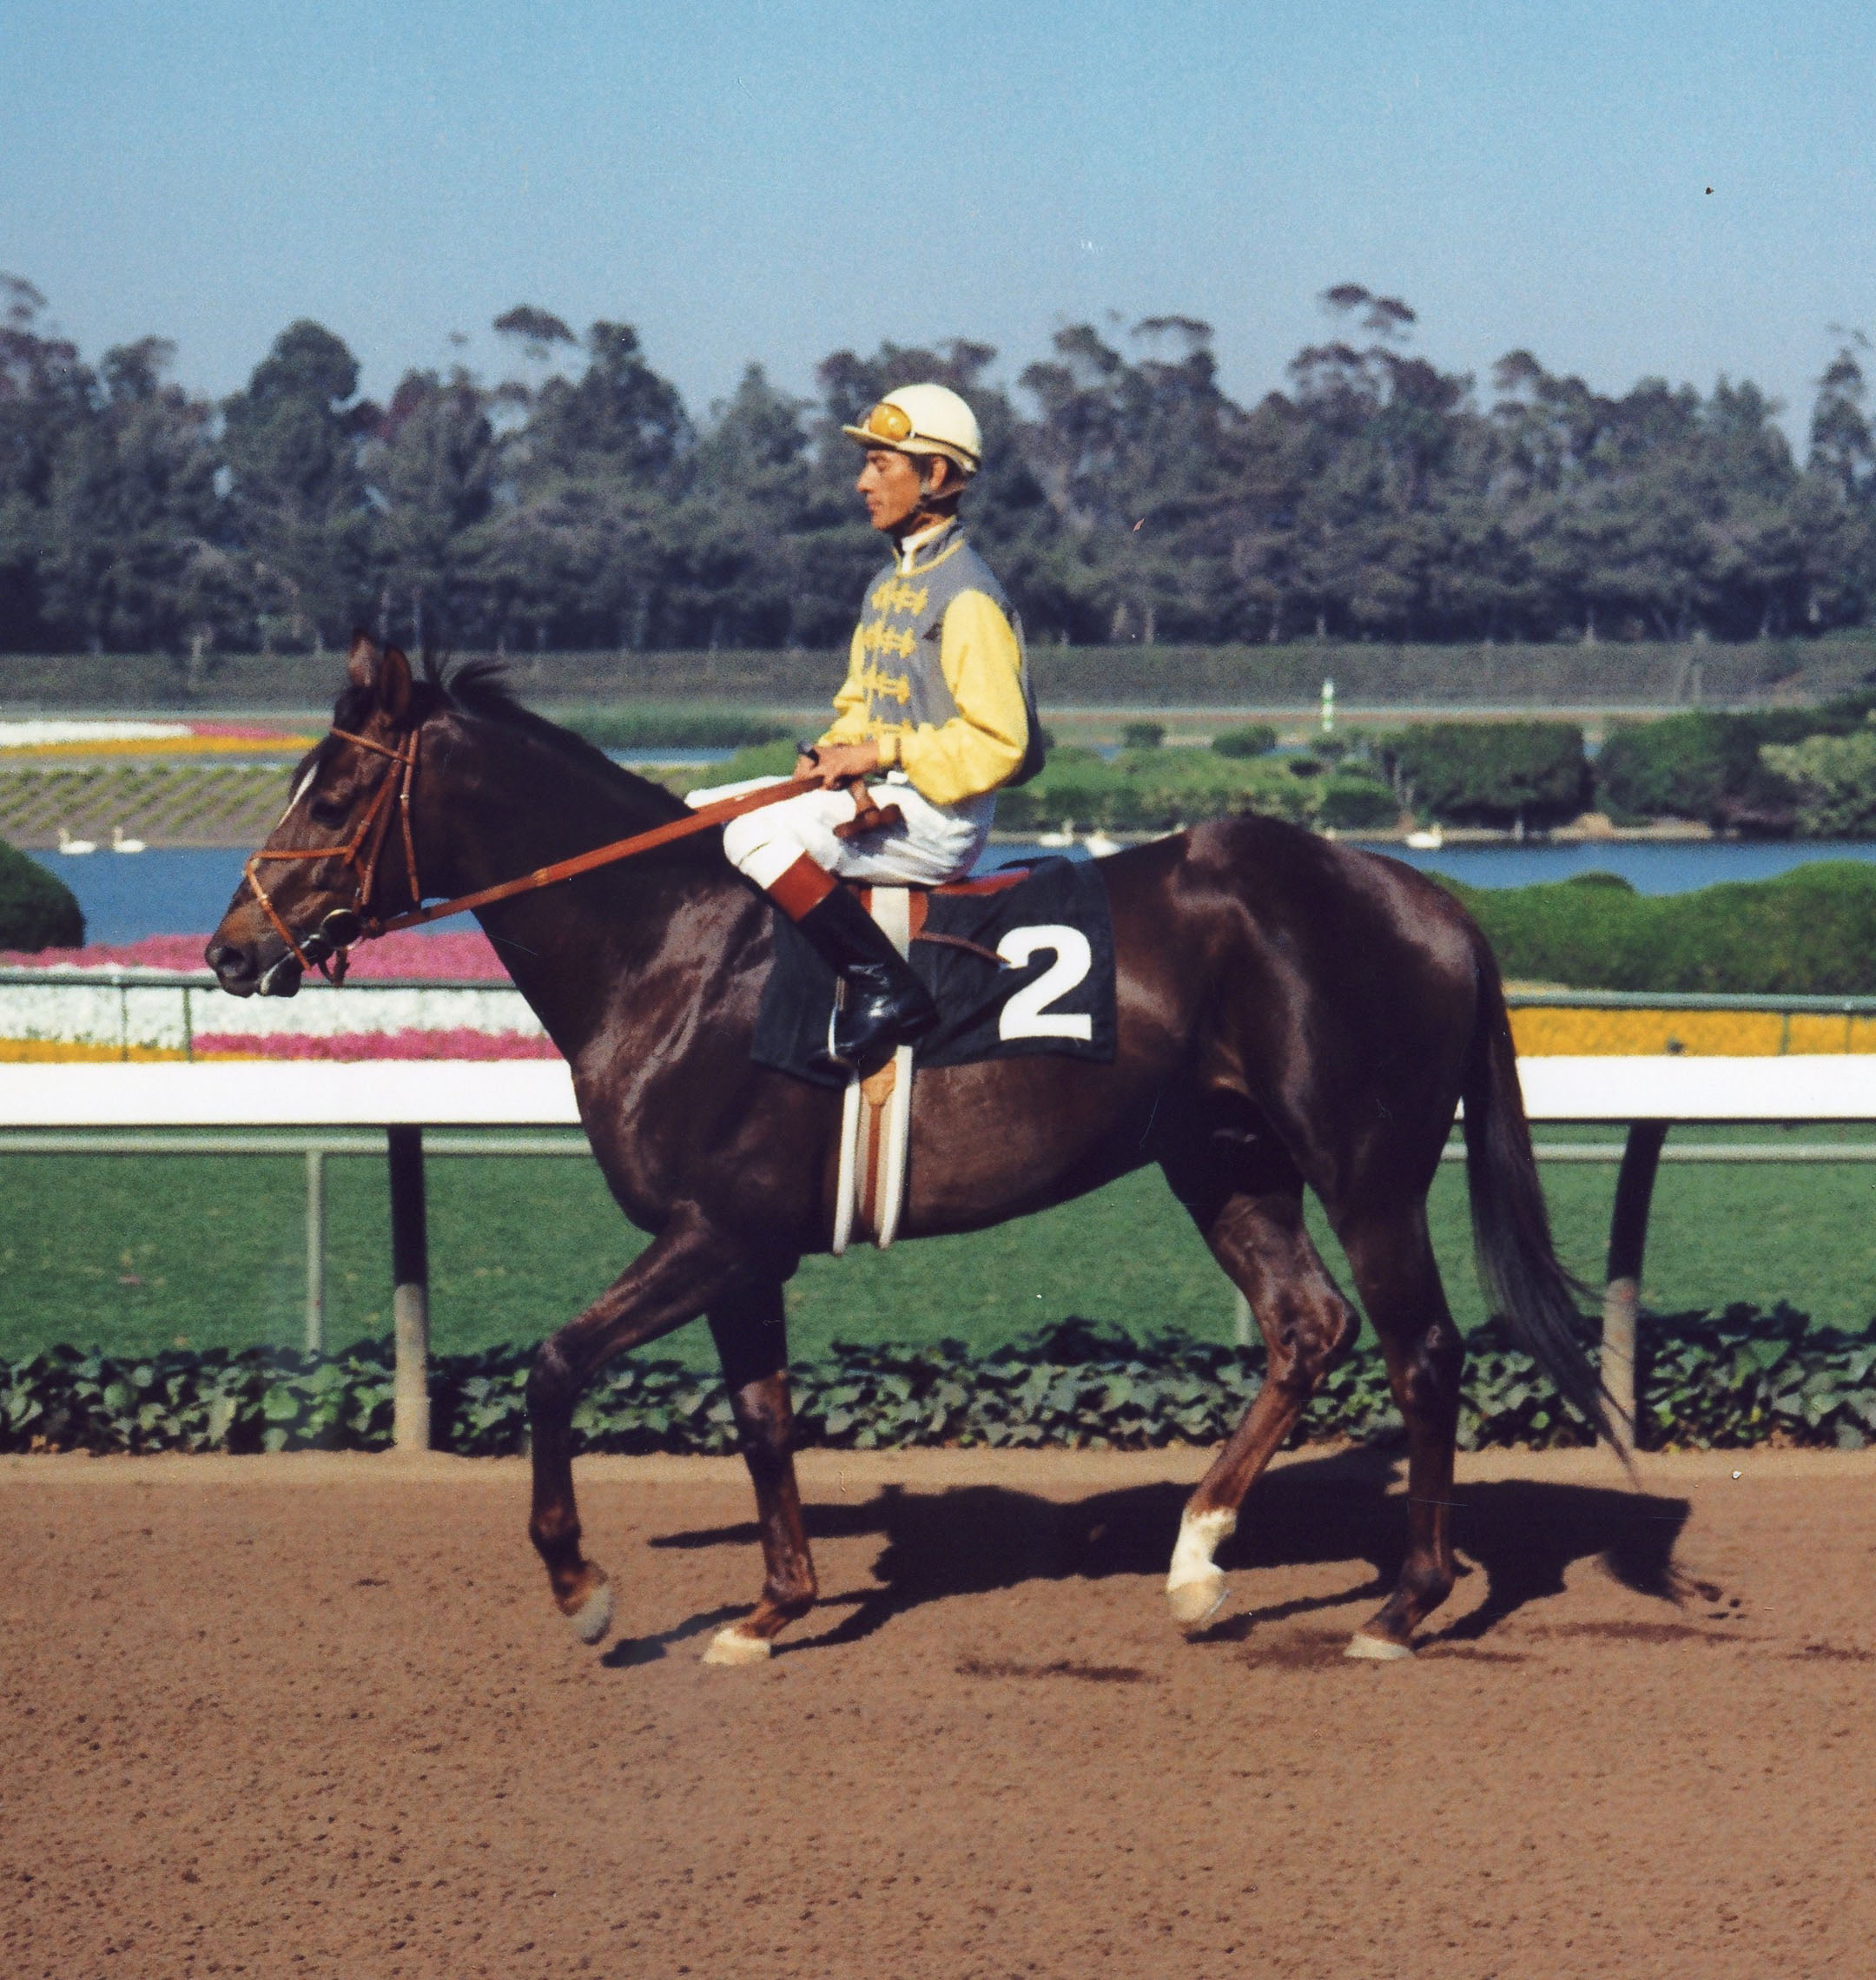 Arts and Letters (Braulio Baeza up) at Hollywood Park, 1970 (Vic Stein & Assoc./Bill Mochon Photo Collection /Museum Collection)